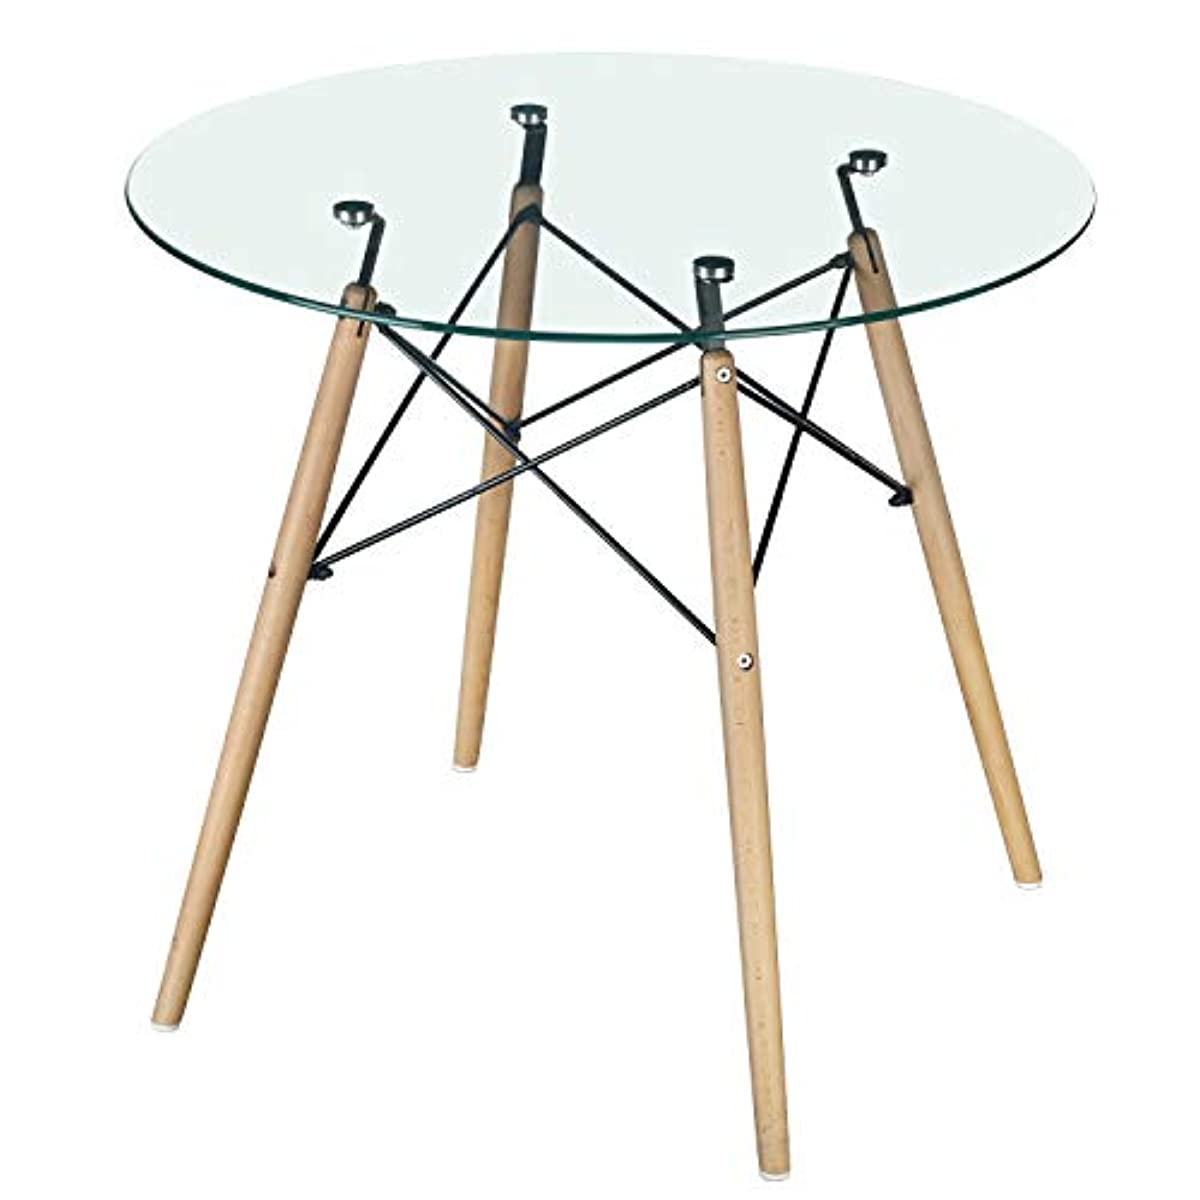 Details about Dining Table Wood Legs 31.5 Inch Modern Round Glass Clear  Meeting Table